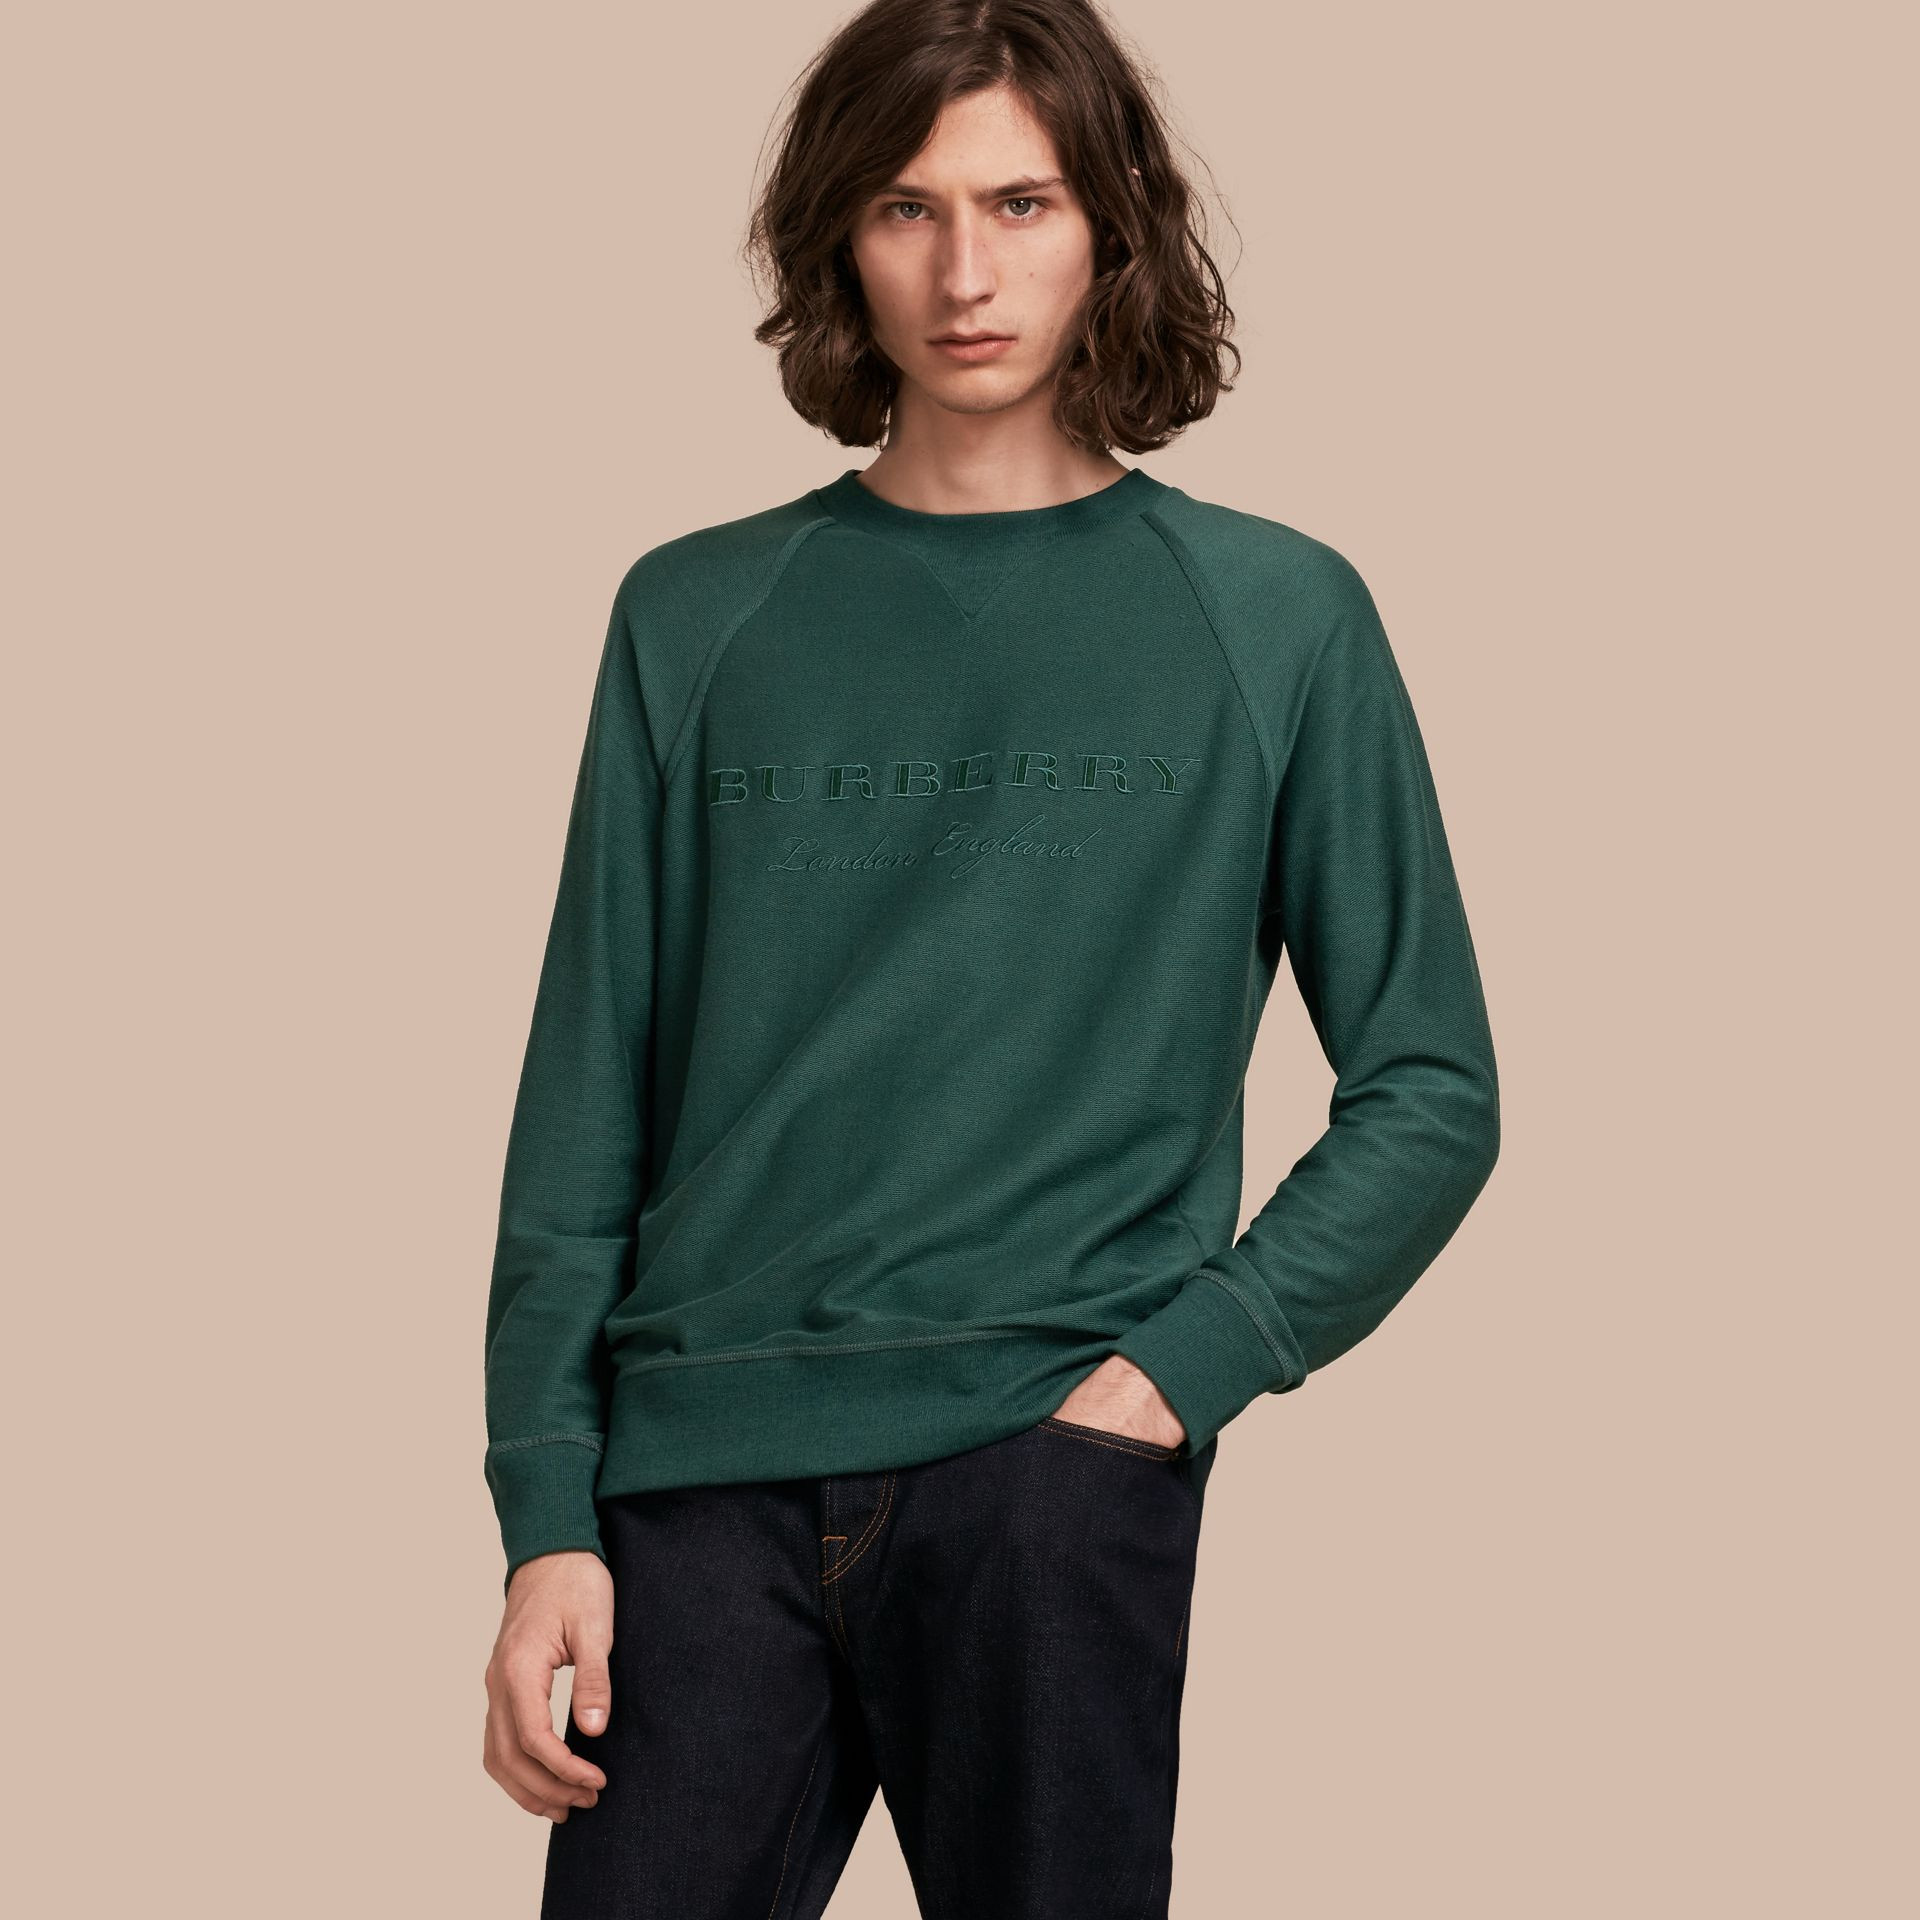 Embroidered Motif Cotton-blend Jersey Sweatshirt in Deep Teal - Men | Burberry - gallery image 1